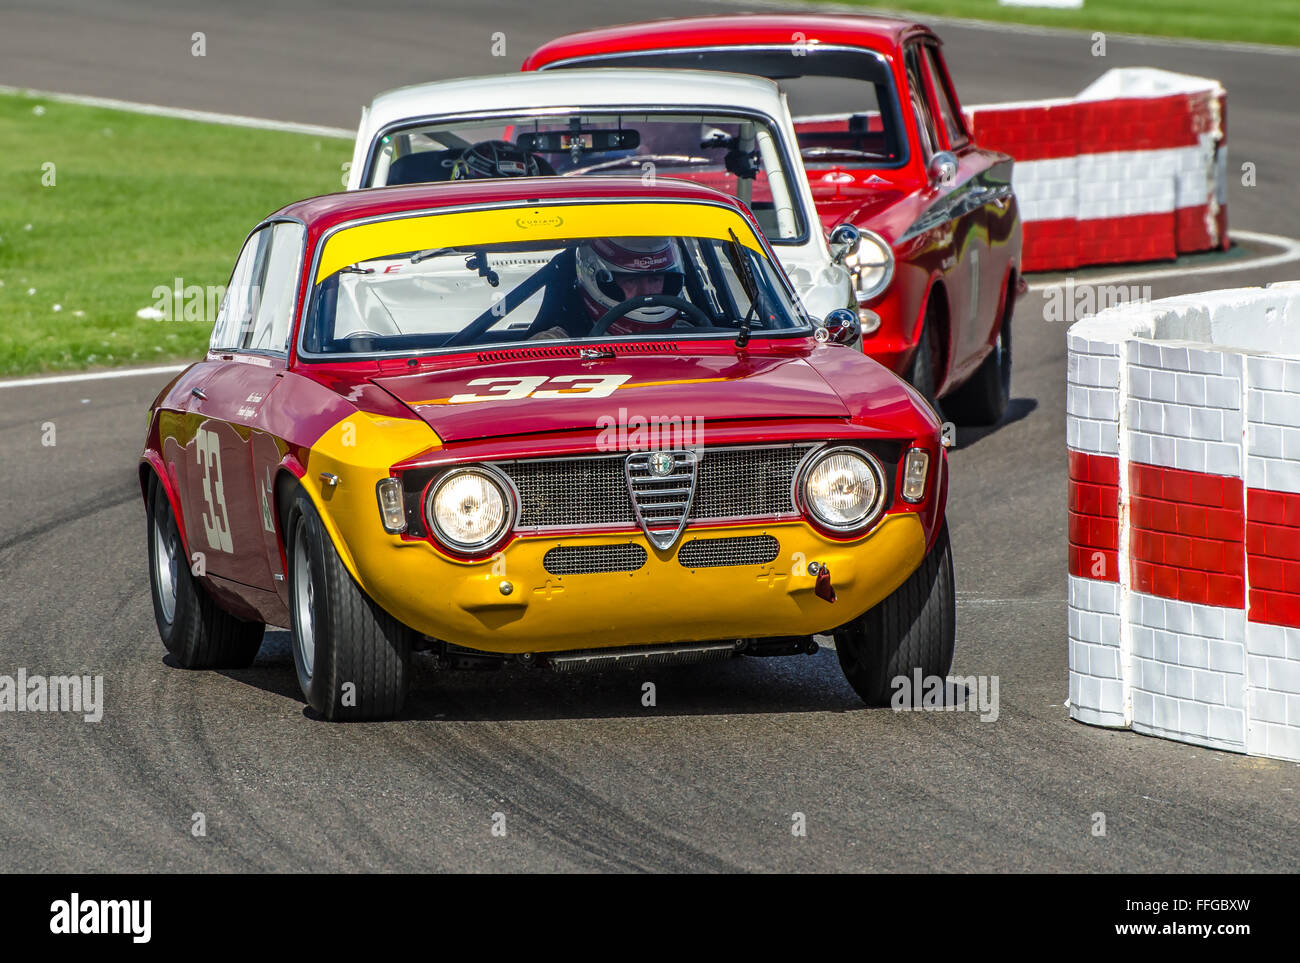 1965-alfa-romeo-1600-gta-is-owned-by-david-fitzsimons-and-was-raced-FFGBXW.jpg